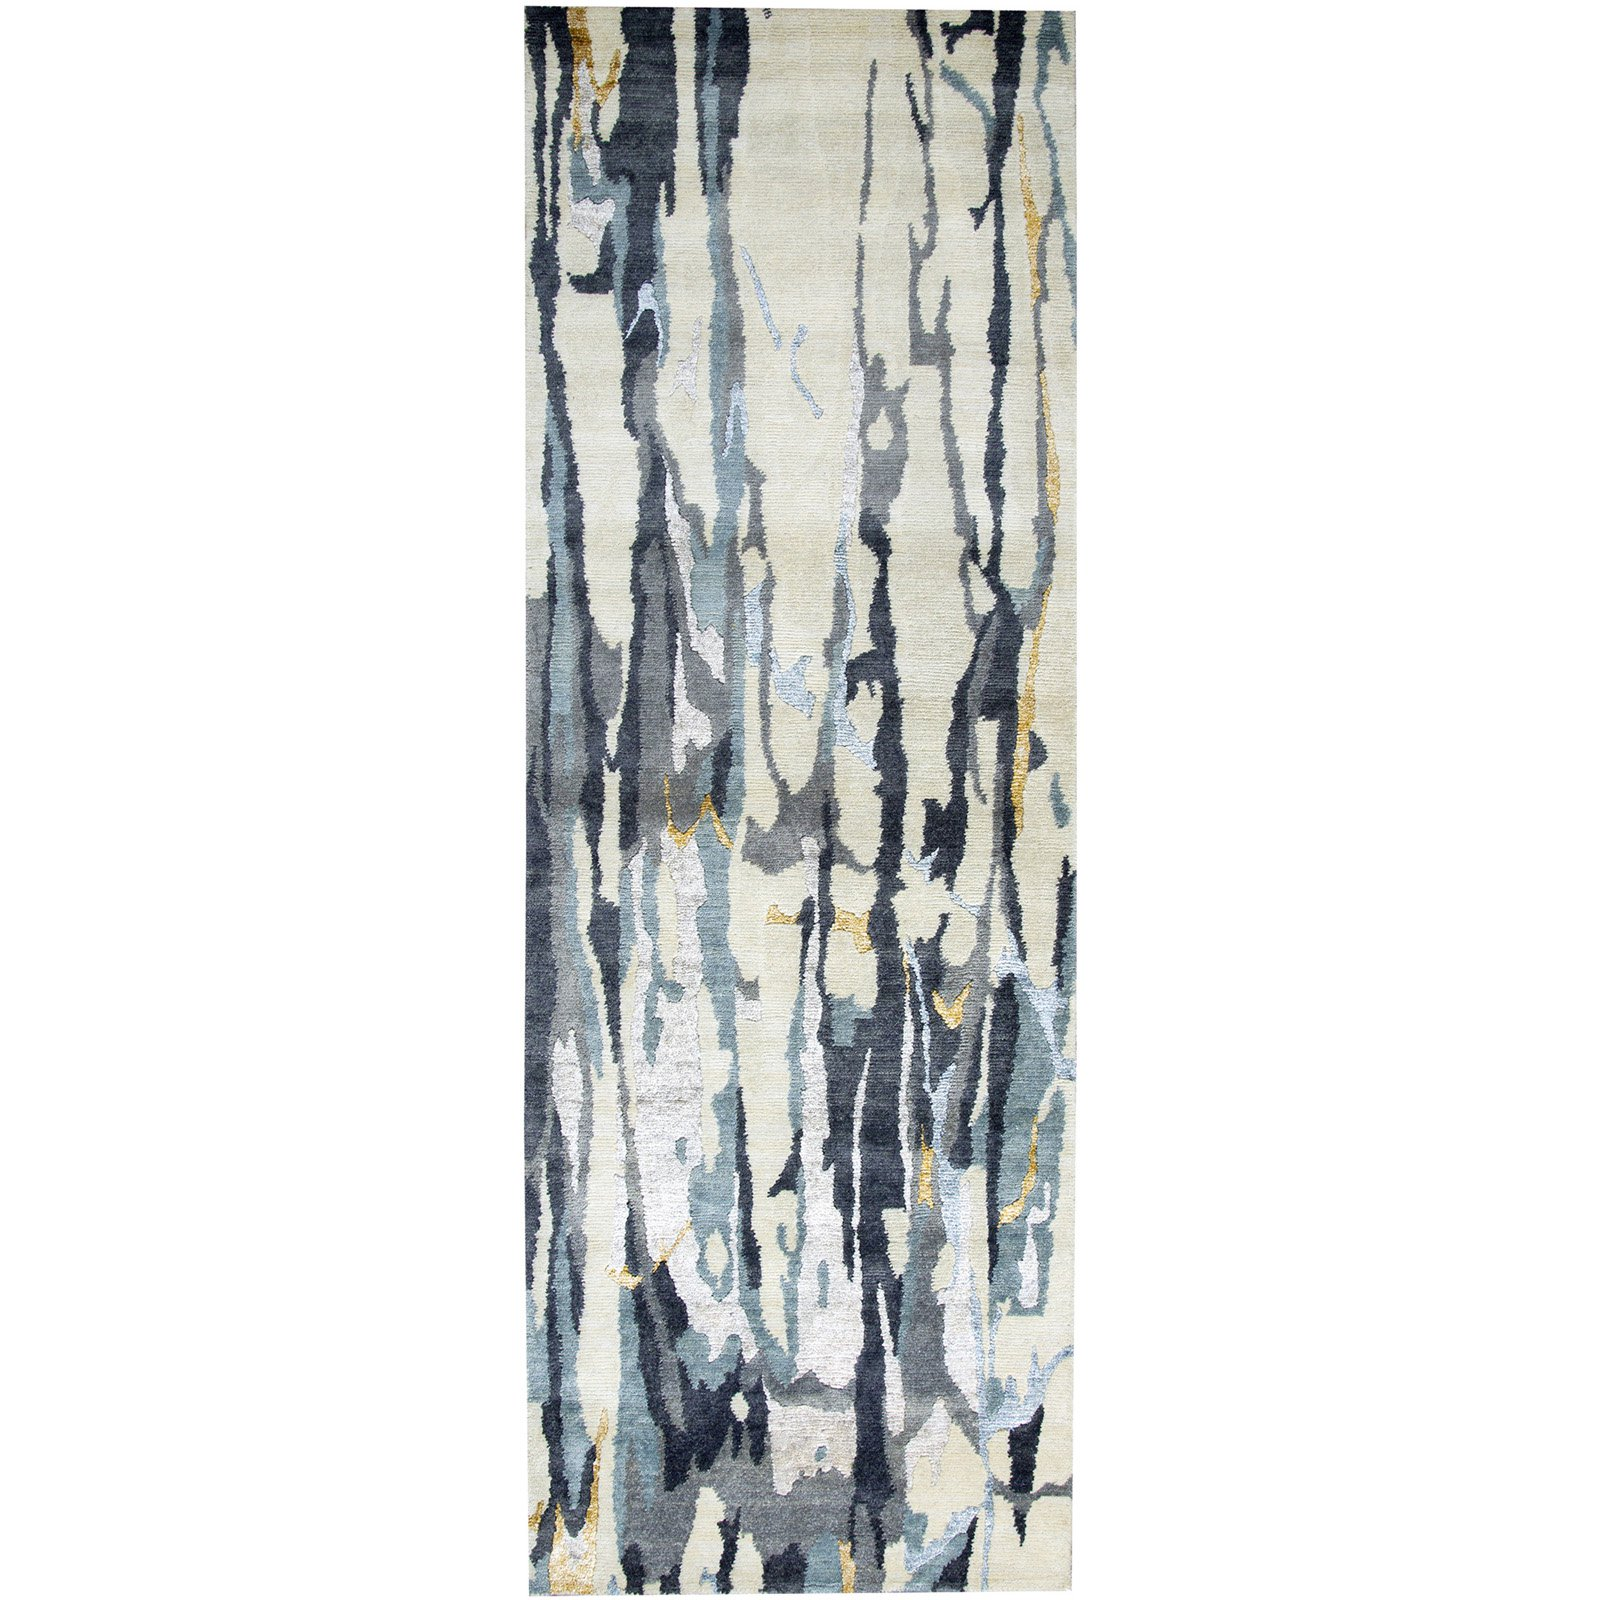 Rizzy Home Avant-Garde AG8826 Rug - (5 Foot 6 Inch x 8 Foot 6 Inch)